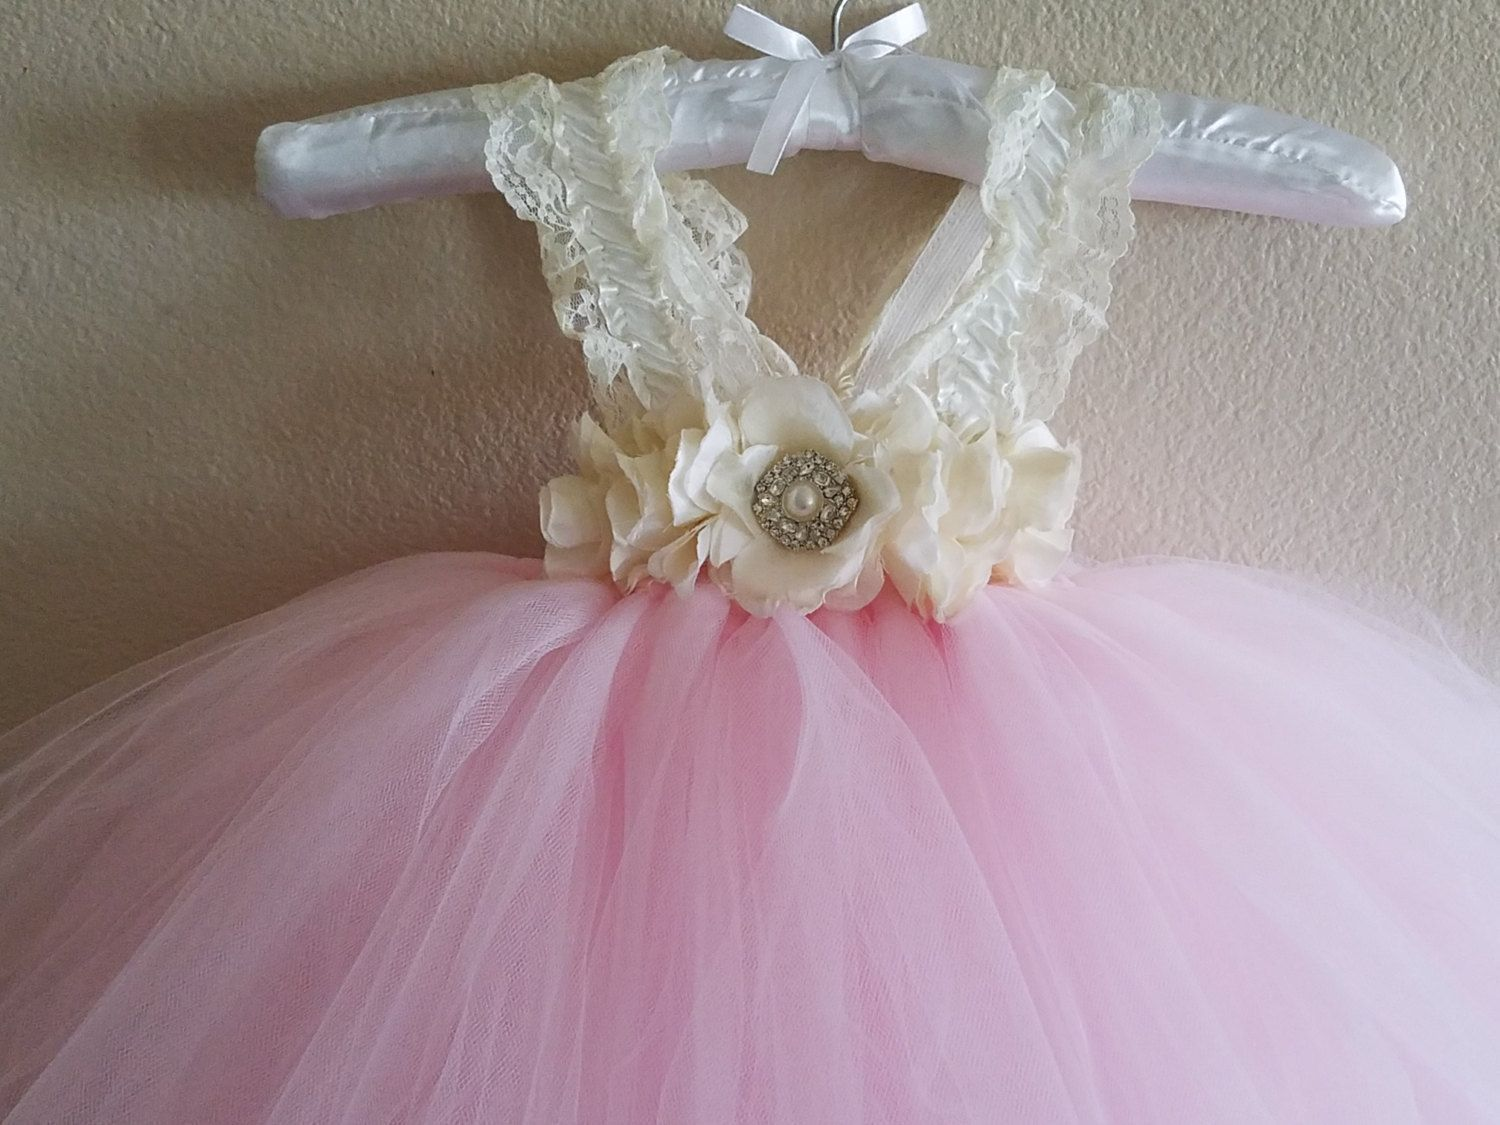 Blush Pink Baby Christening Dress / Baby Confirmation Dress/ Baby Baptism Dress/ Flower Girl Tutu Dress / Flower Girl Dress / Infant dress by GiaGiaCouture on Etsy #confirmationdresses Blush Pink Baby Christening Dress / Baby Confirmation Dress/ Baby Baptism Dress/ Flower Girl Tutu Dress / Flower Girl Dress / Infant dress by GiaGiaCouture on Etsy #confirmationdresses Blush Pink Baby Christening Dress / Baby Confirmation Dress/ Baby Baptism Dress/ Flower Girl Tutu Dress / Flower Girl Dress / Infa #confirmationdresses